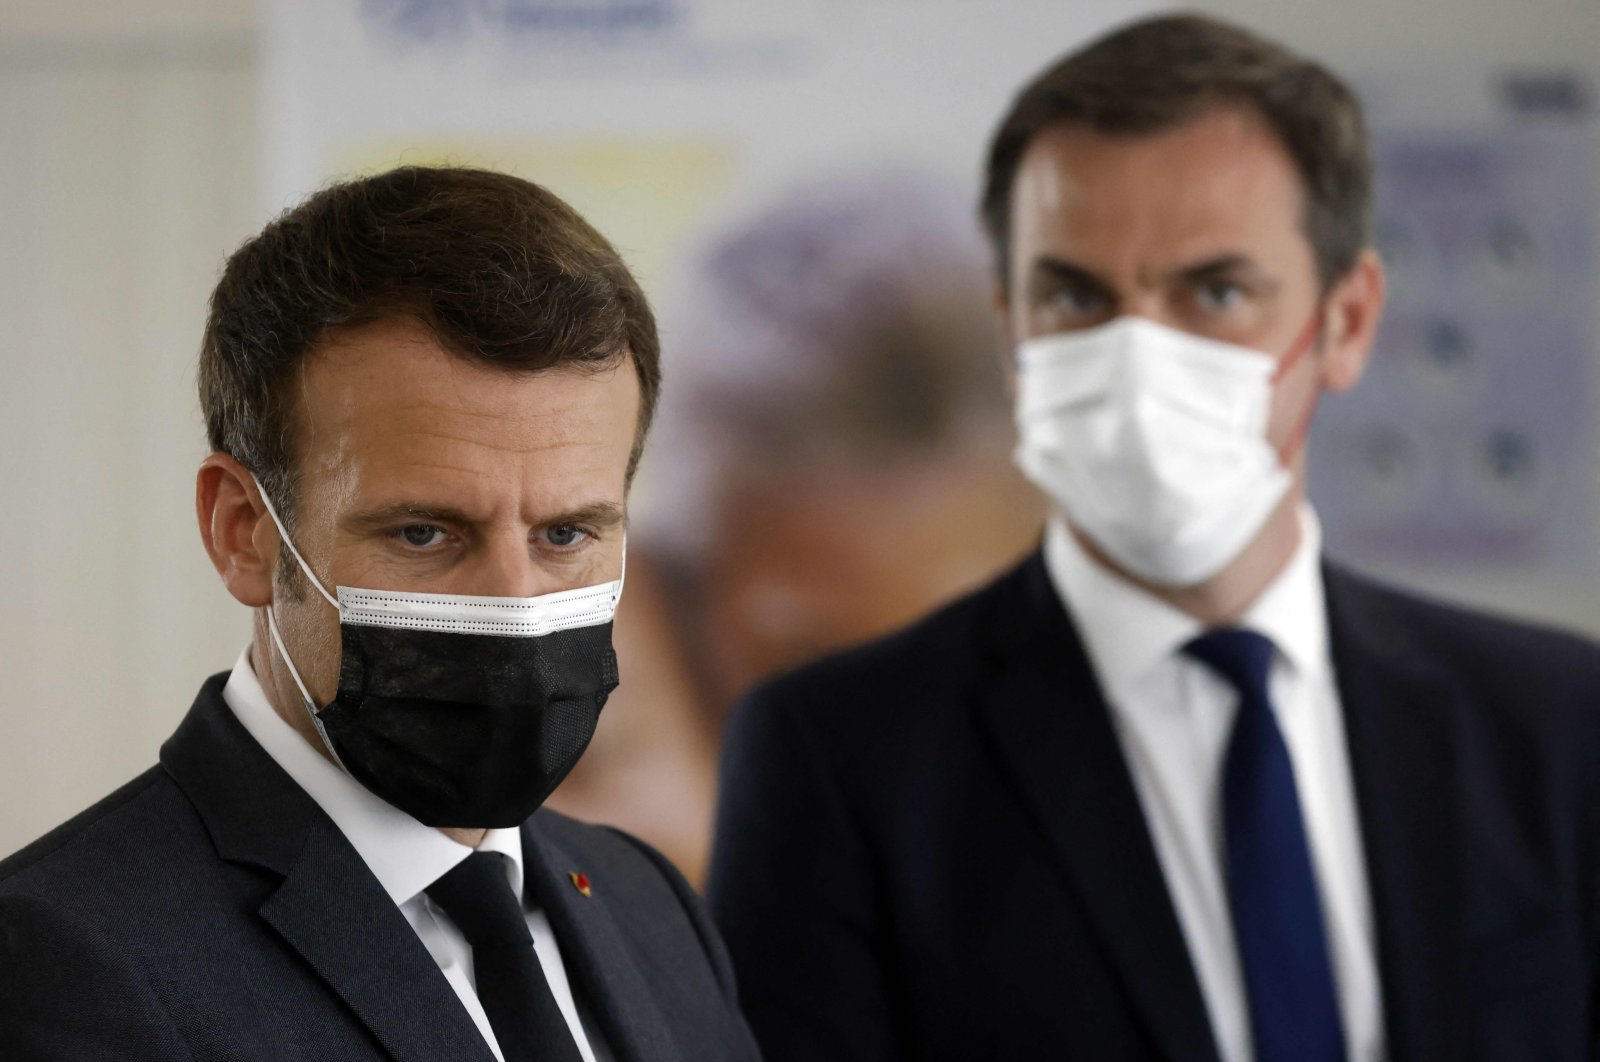 French President Emmanuel Macron (L) and French Health Minister Olivier Veran (R) visit a calling center of the French social security insurance dedicated to COVID-19 vaccination in Creteil, Paris, France, March 29, 2021. (AFP Photo)